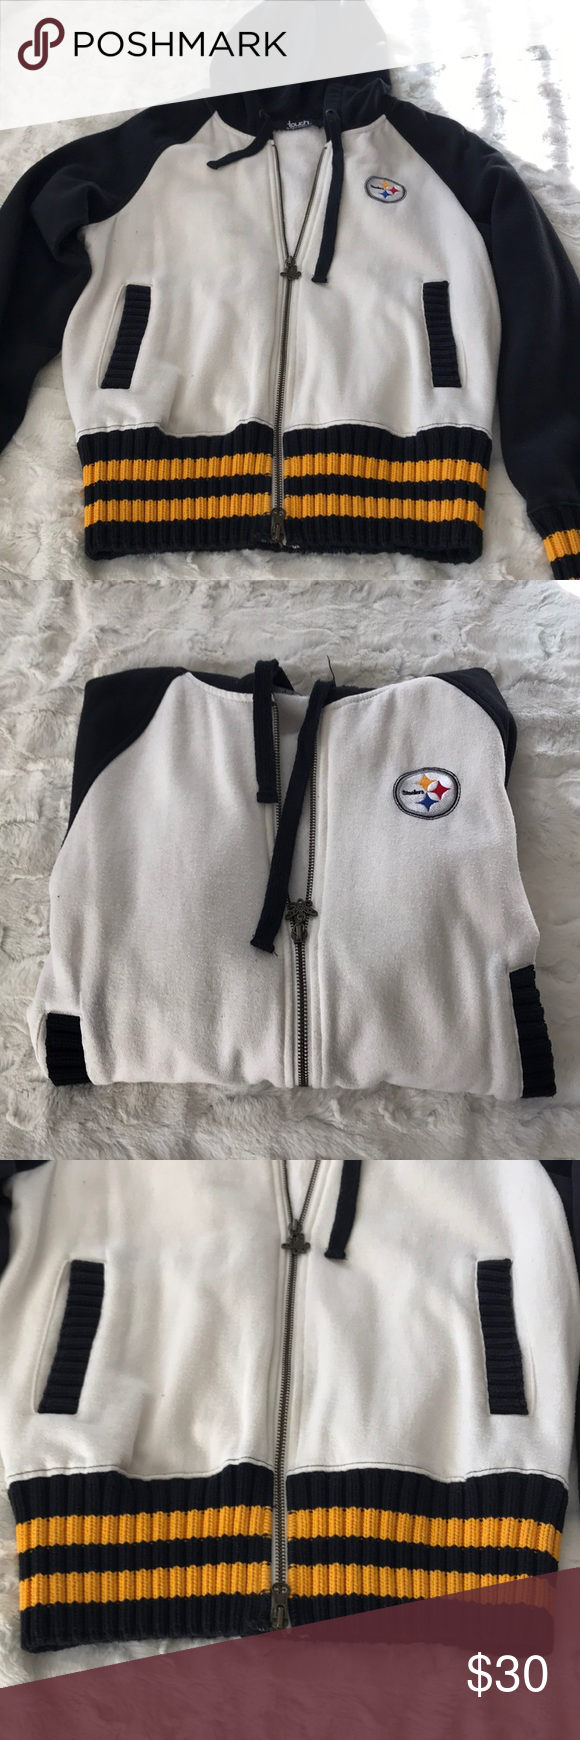 online store 2bd26 6f8d5 Pittsburgh Steelers jacket Alyssa Milano coll. 💛❤️💙 This ...